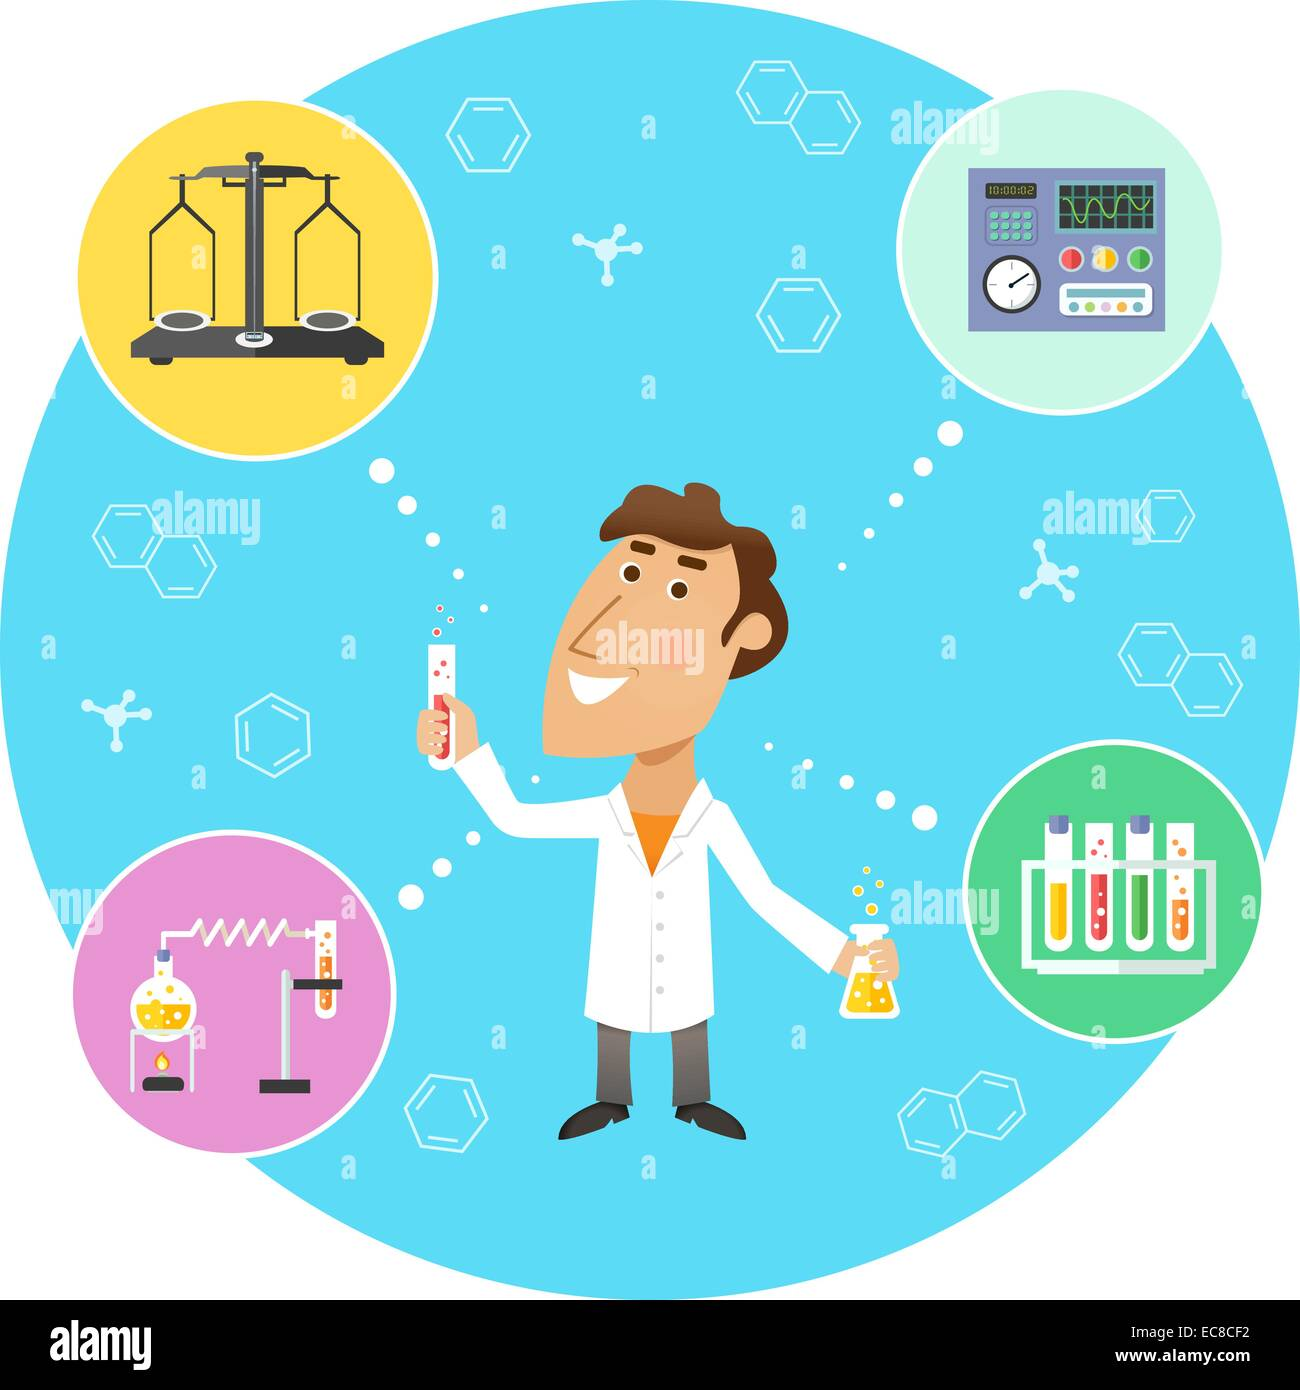 Scientist chemist in lab with scales flasks and molecular structure symbols on background vector illustration - Stock Vector